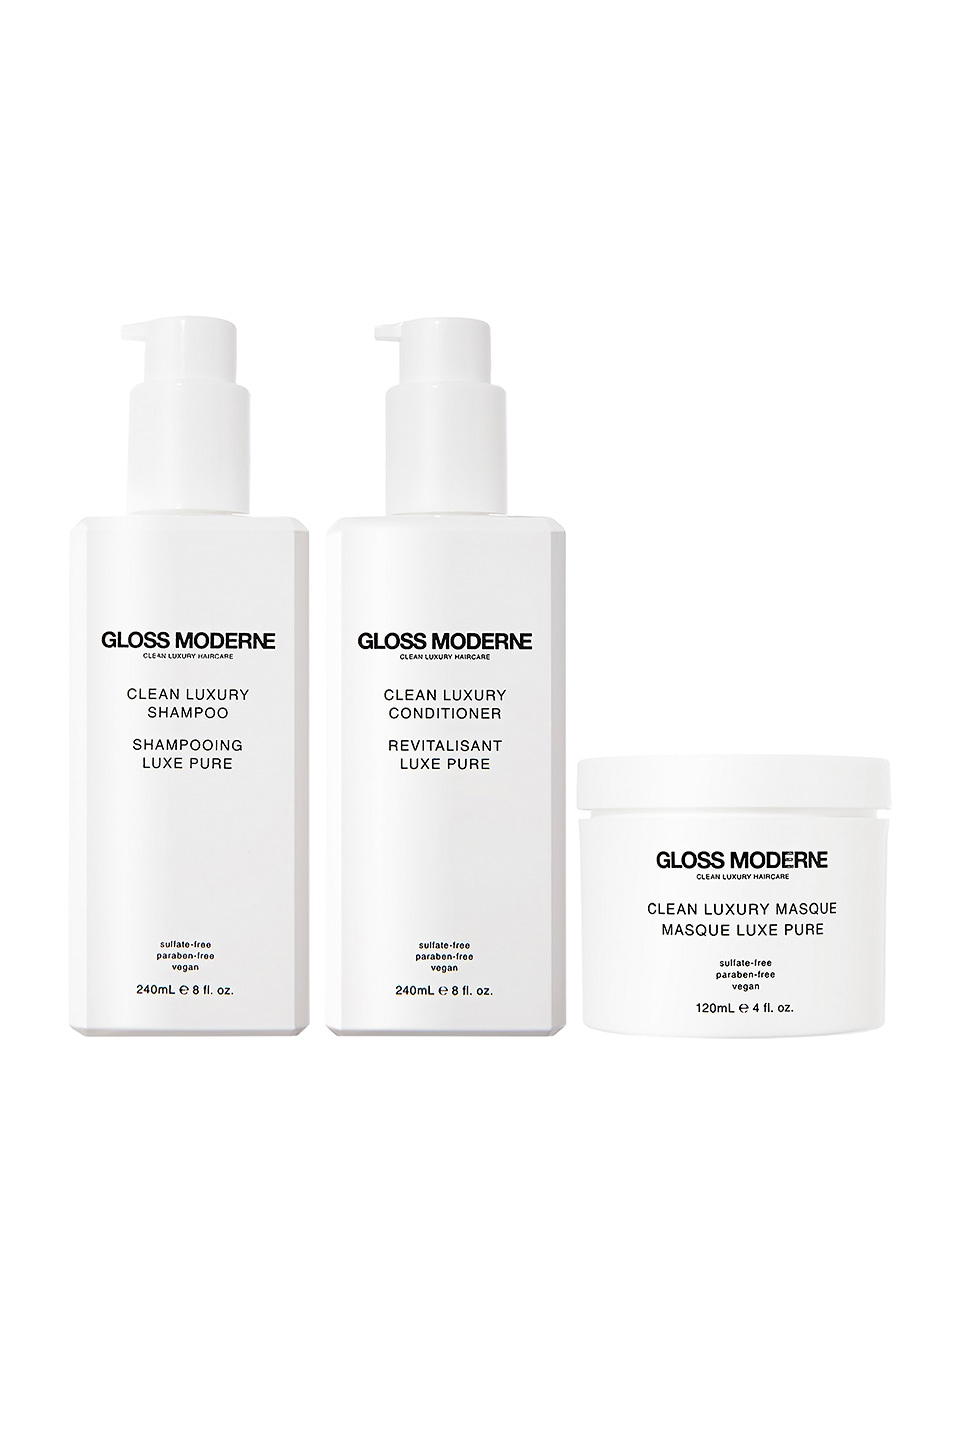 GLOSS MODERNE CLEAN LUXURY ヘアケアセット